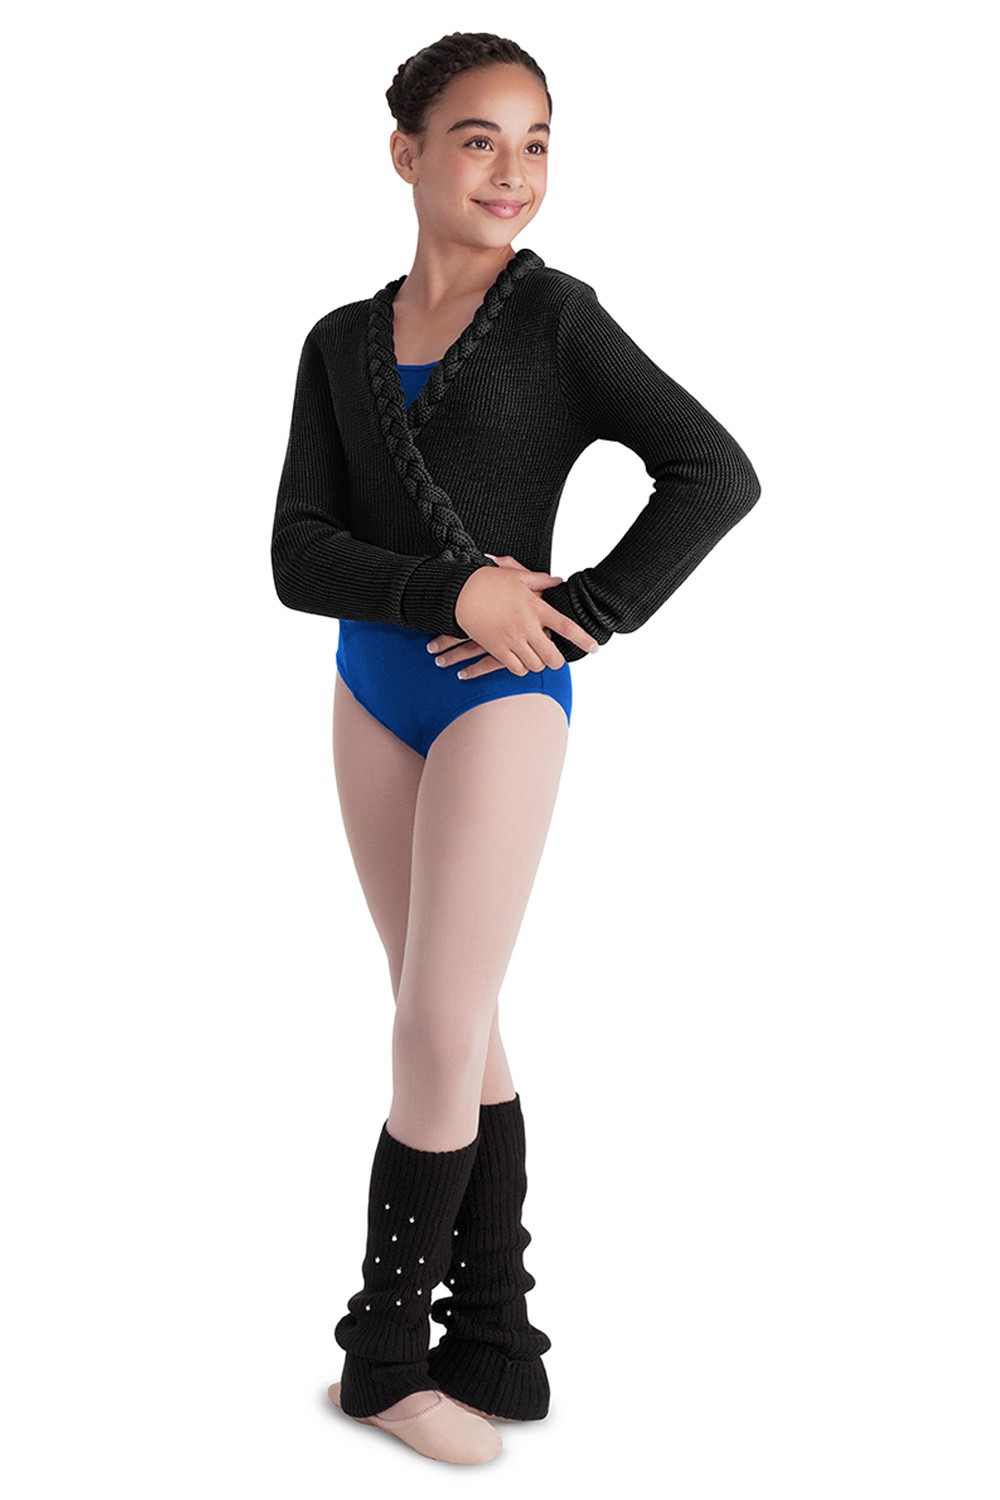 Plaited Knit Wrap Top Children's Dance Warmups